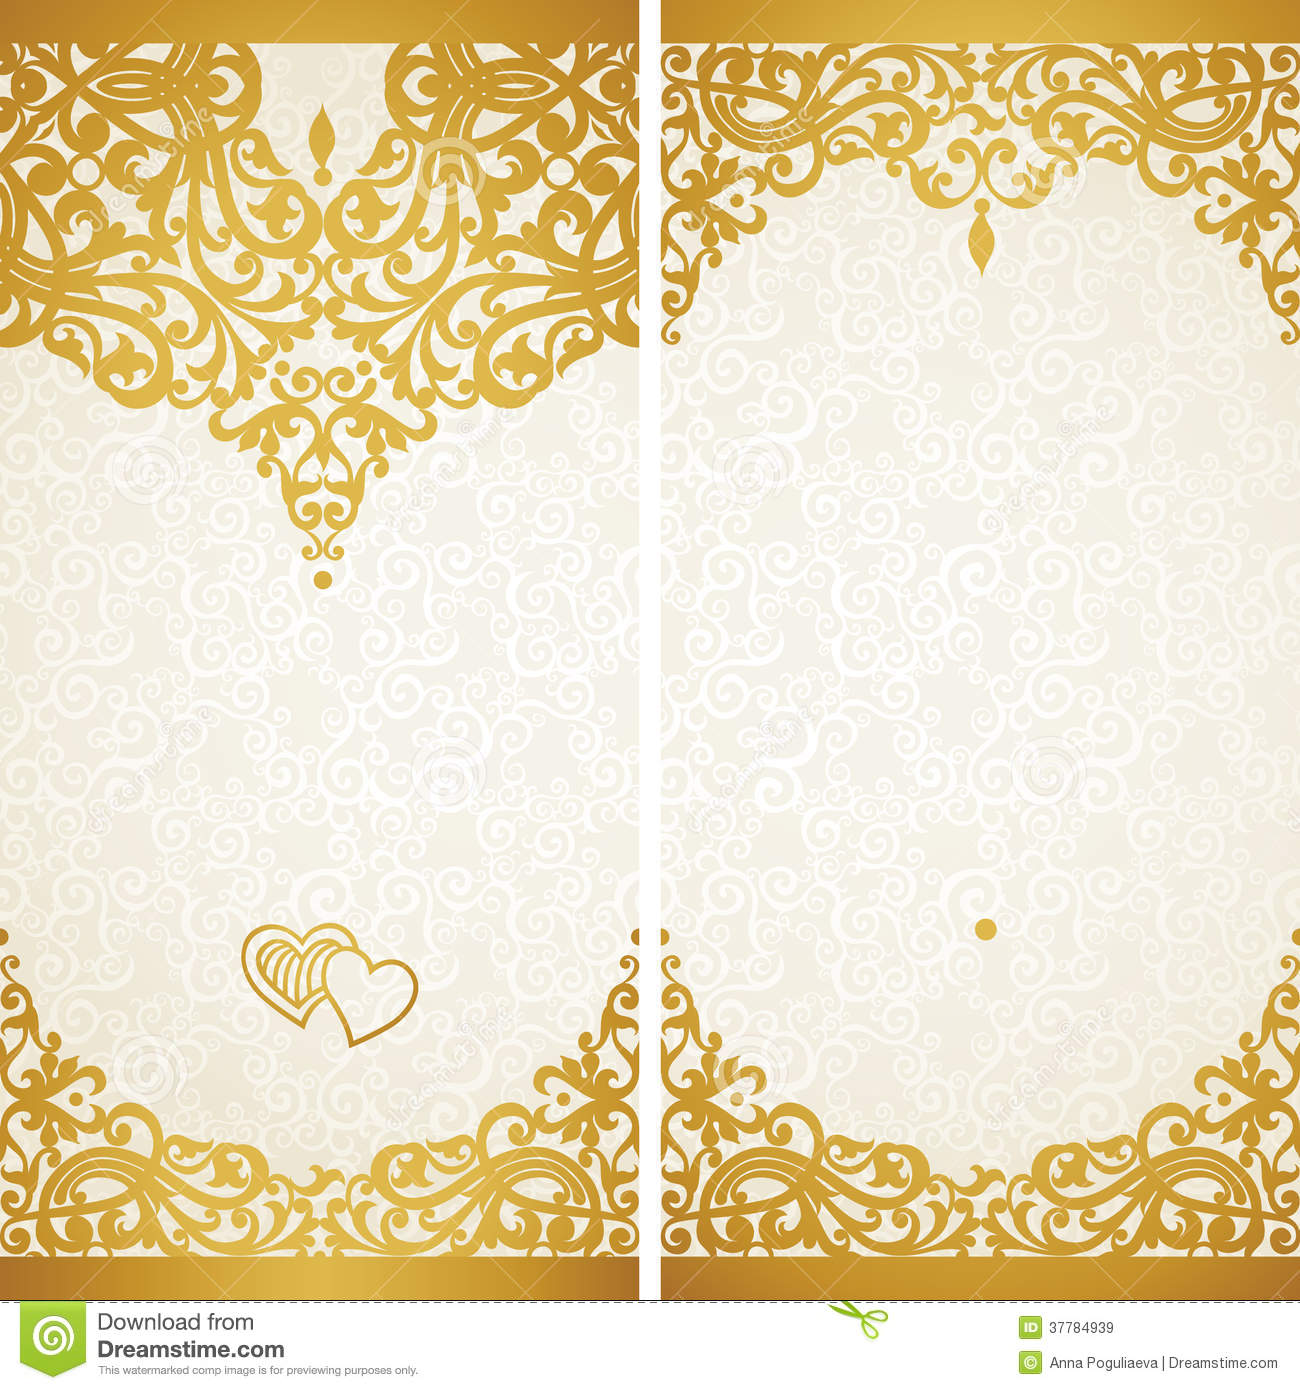 Swirl border designs templates thecheapjerseys Image collections